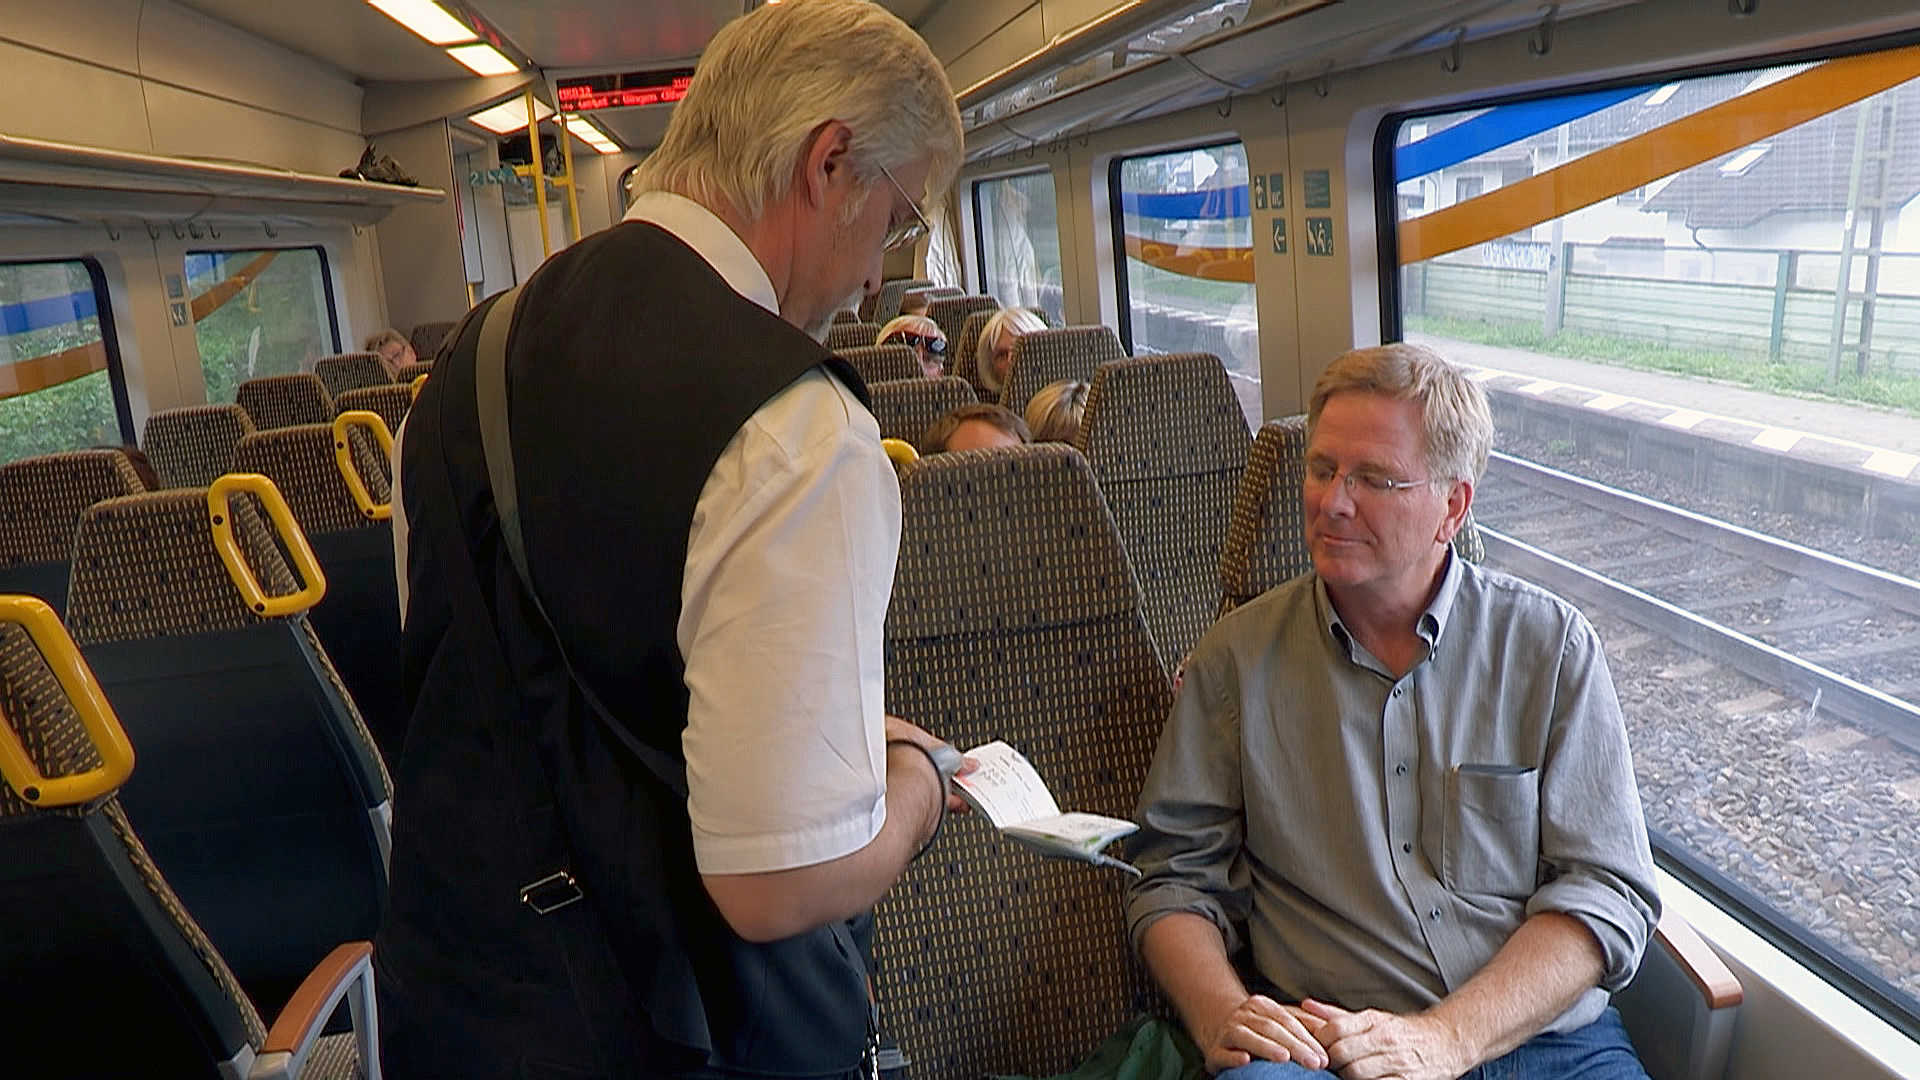 Rick Steves has his ticket examined by the train conductor